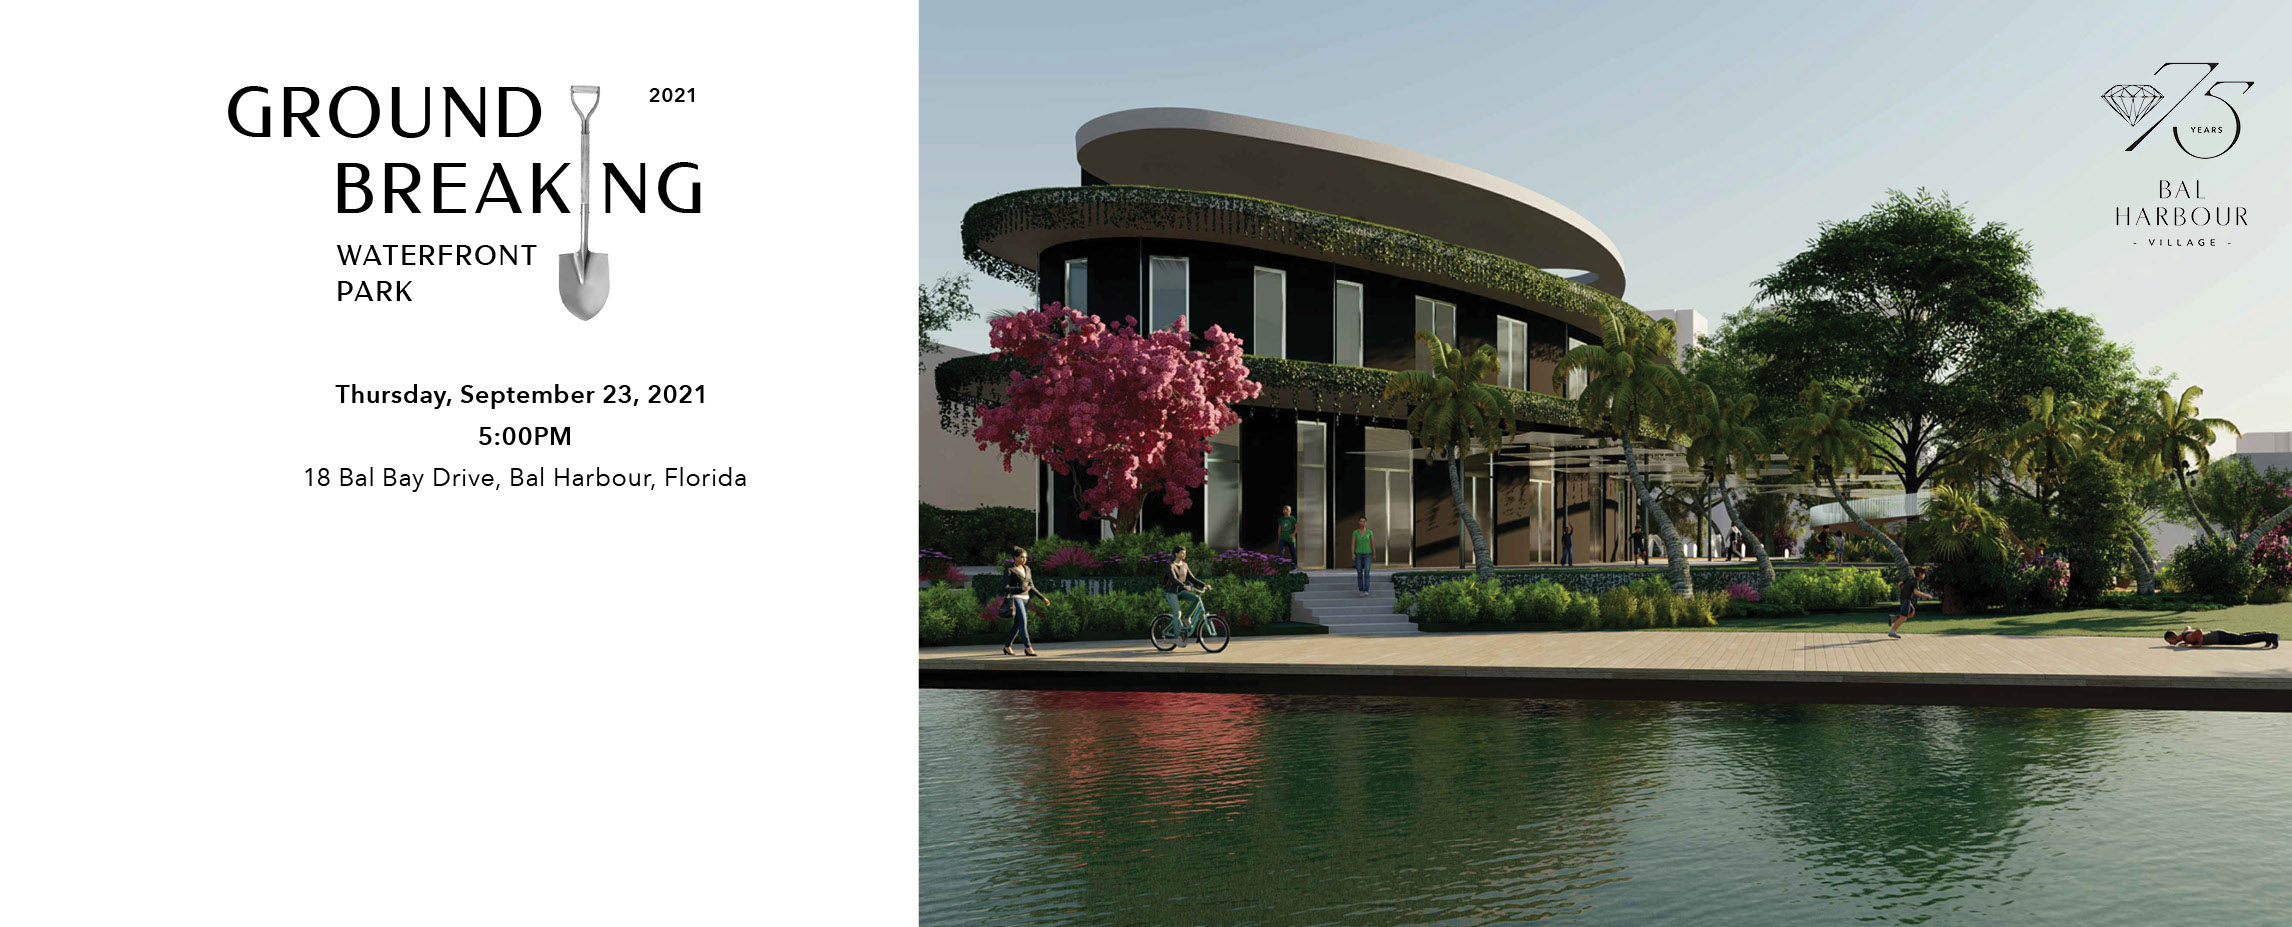 Waterfront Park image with invitation to groundbreaking on Thursday September 23 at 5pm